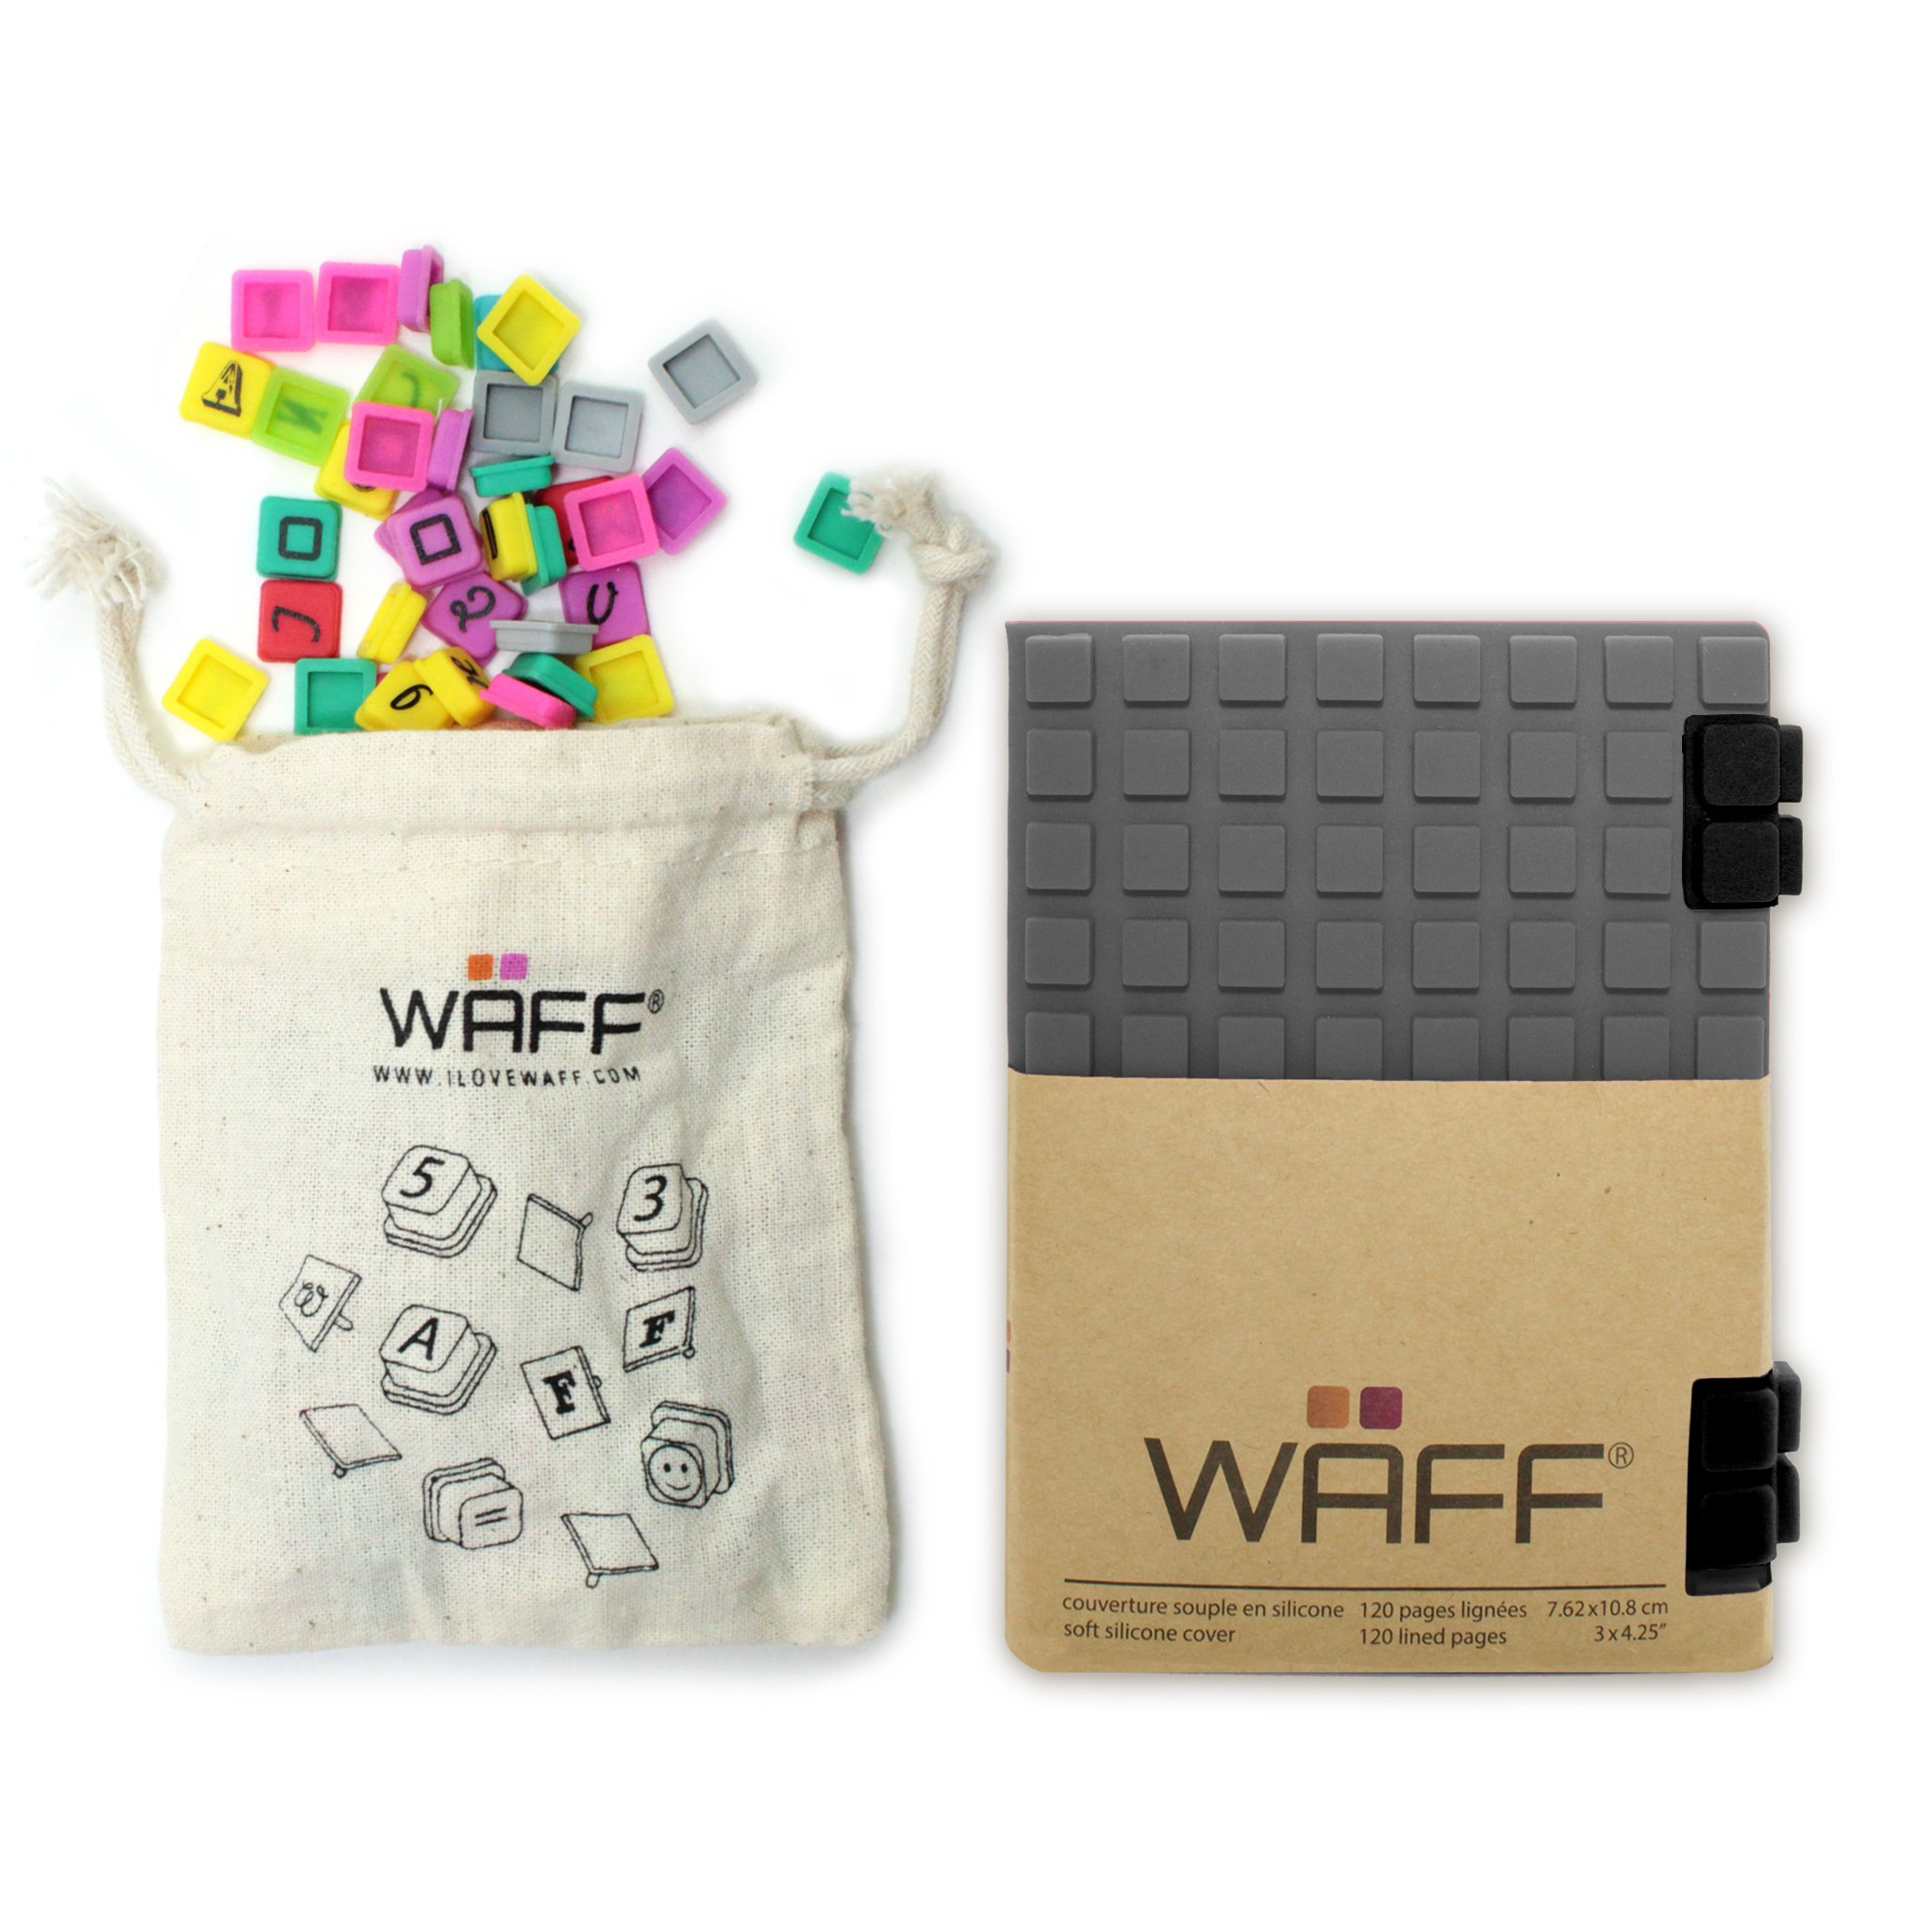 WAFF World Gifts Waff Journal and Game, Grey, 4.25 x 3 by WAFF World Gifts Inc. (Image #1)